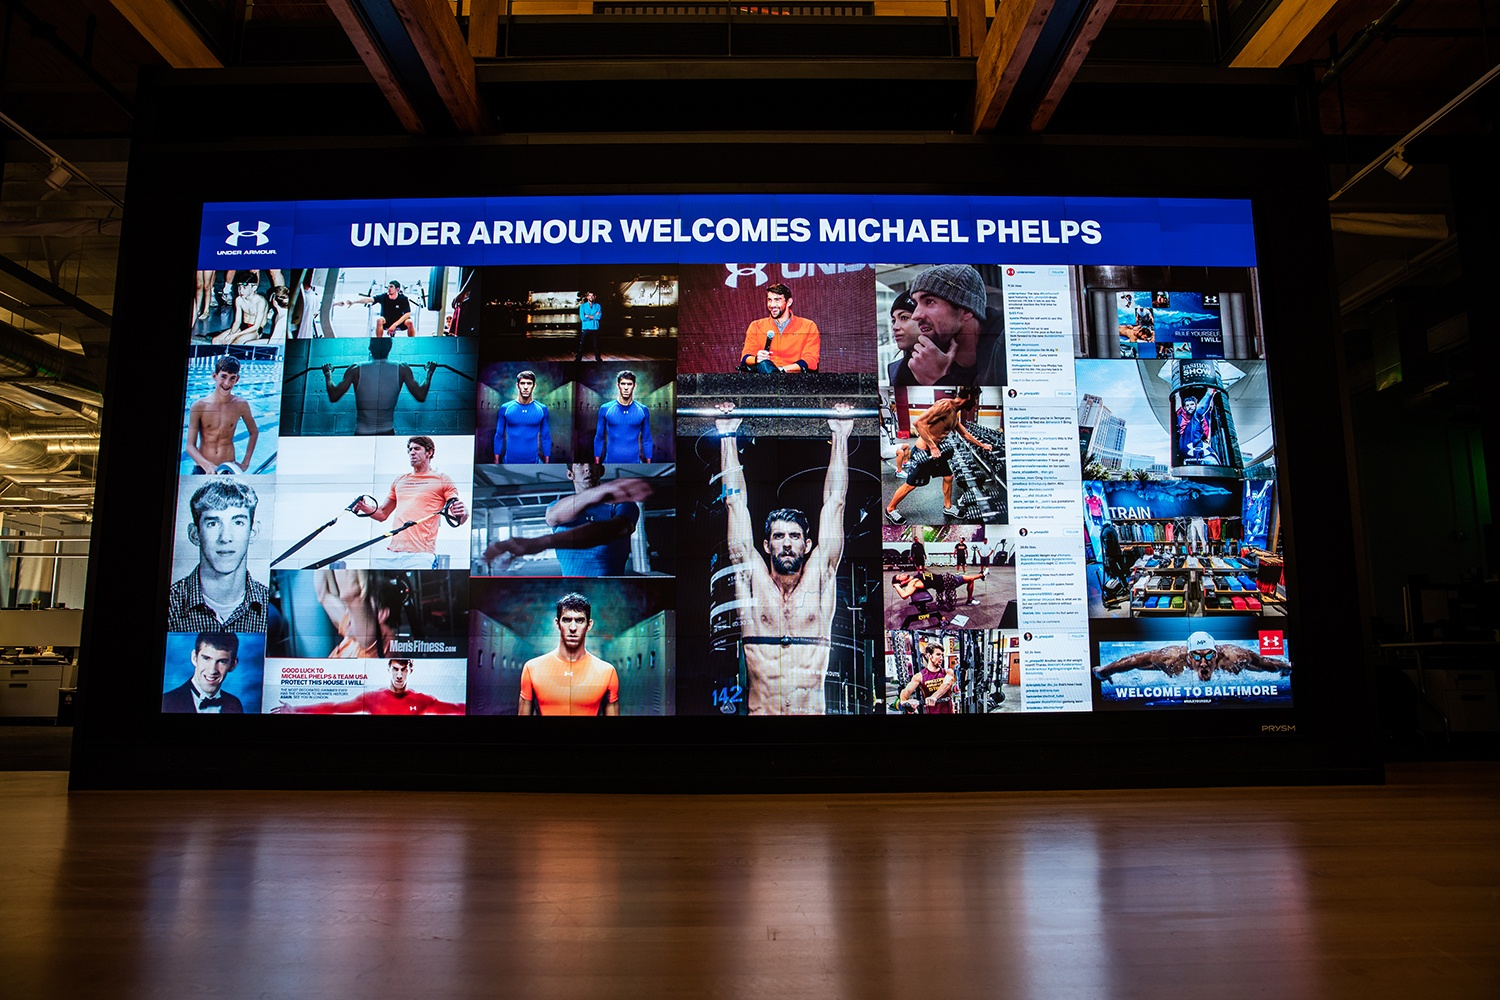 under-armour-story-michael-phelps-prysm-1